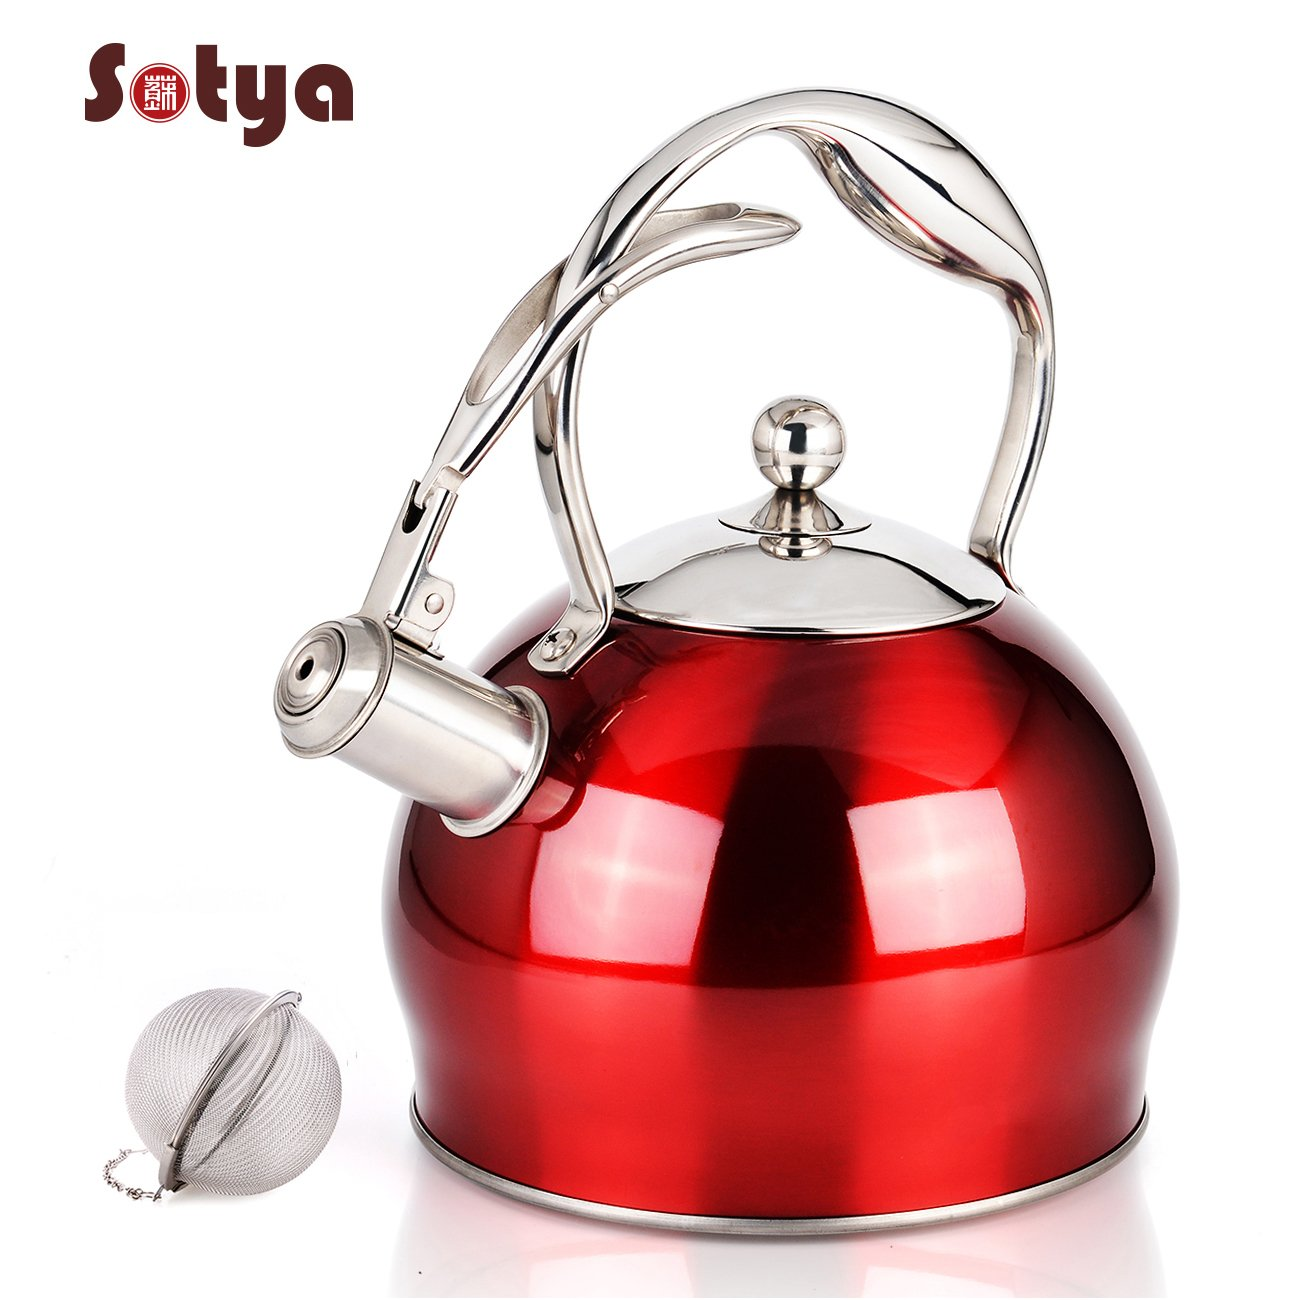 Best Stainless Steel Whistling Teakettle Tea Pot Kettle for Stovetop Teapot Stove Top with anti-hot gloves,3.17 Quart (RED)